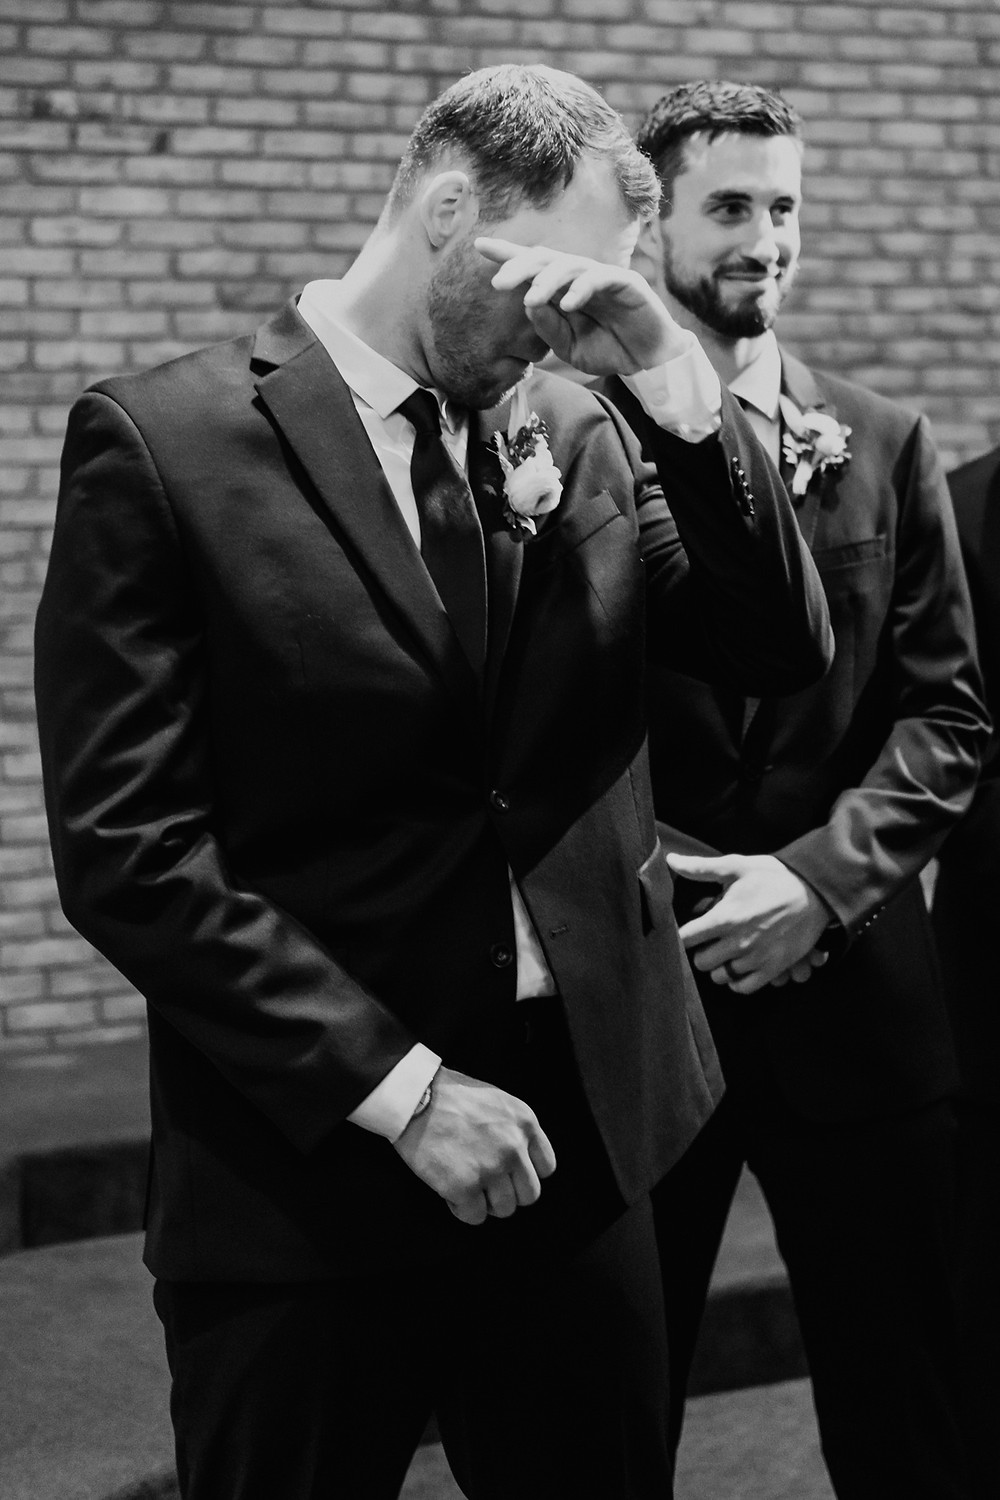 Groom tearing up during wedding ceremony. Photographed by Nicole Leanne Photography.